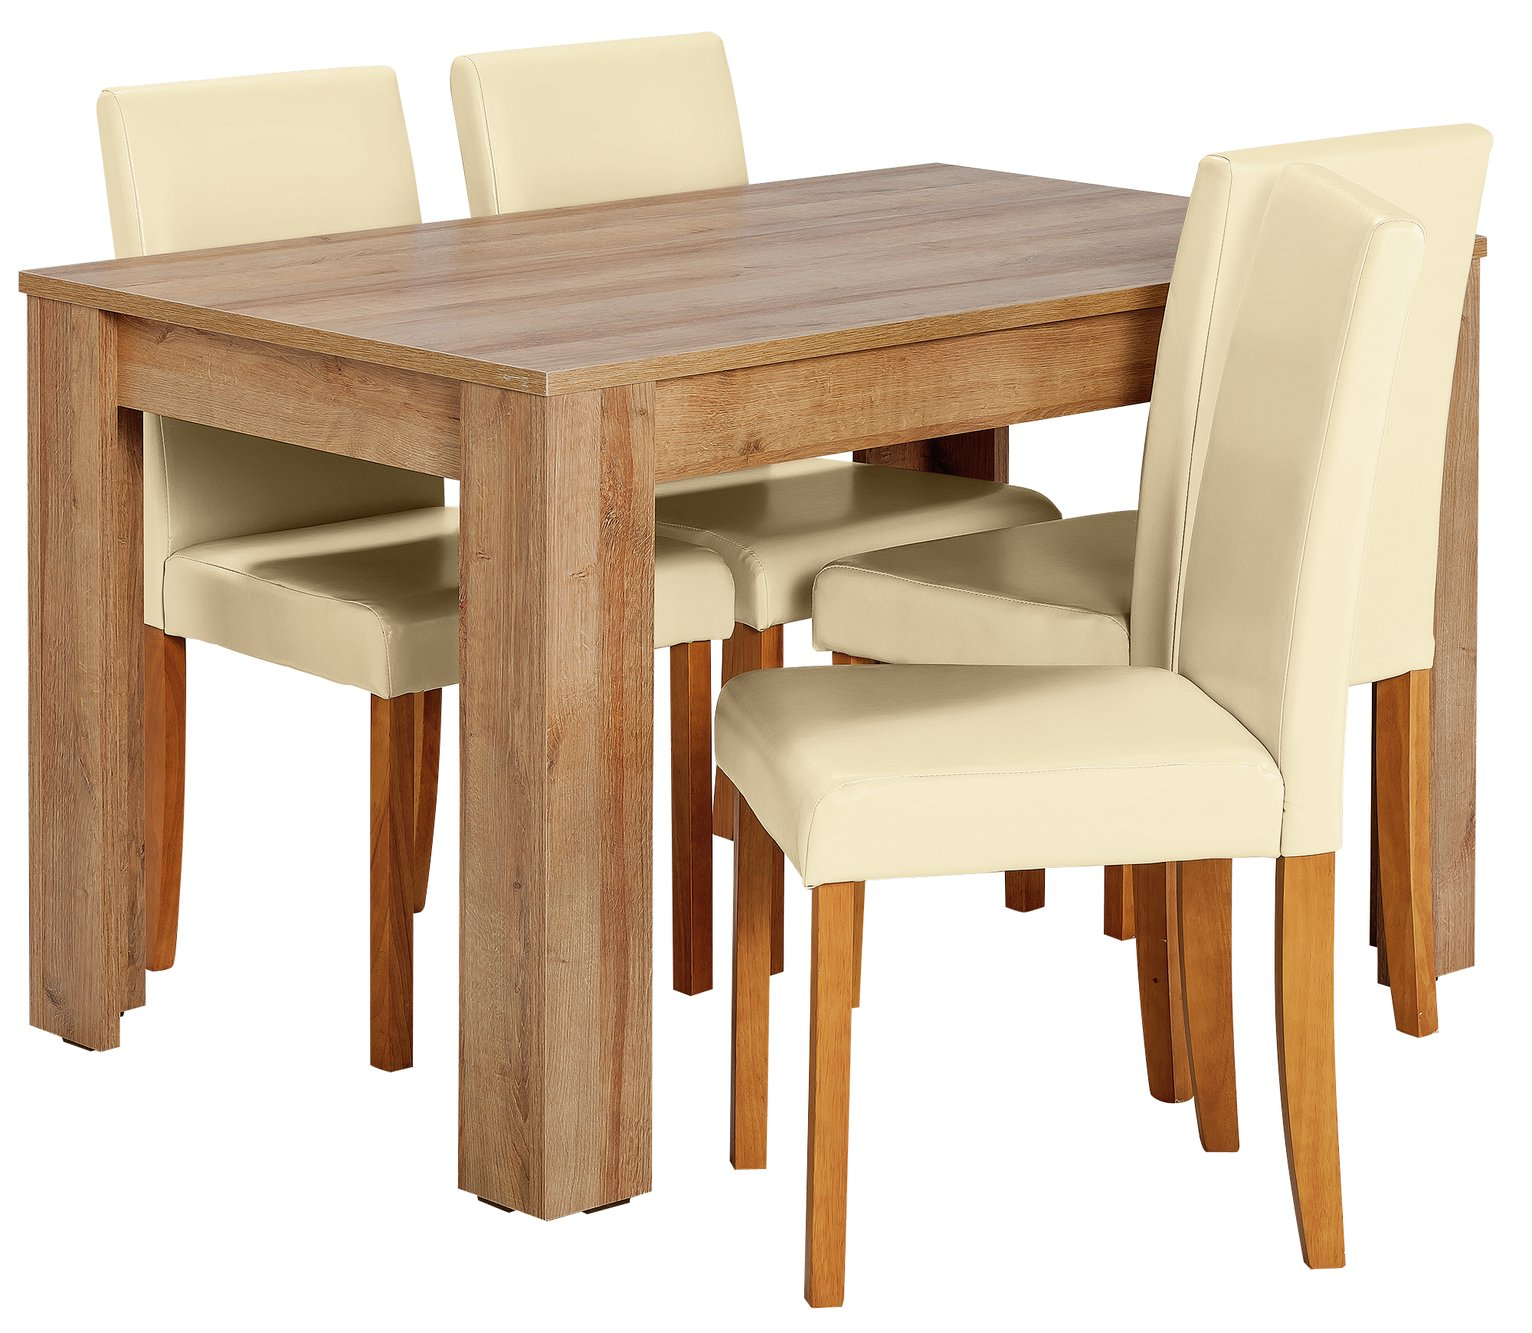 Image of HOME Miami Dining Table & 4 Chairs - Cream